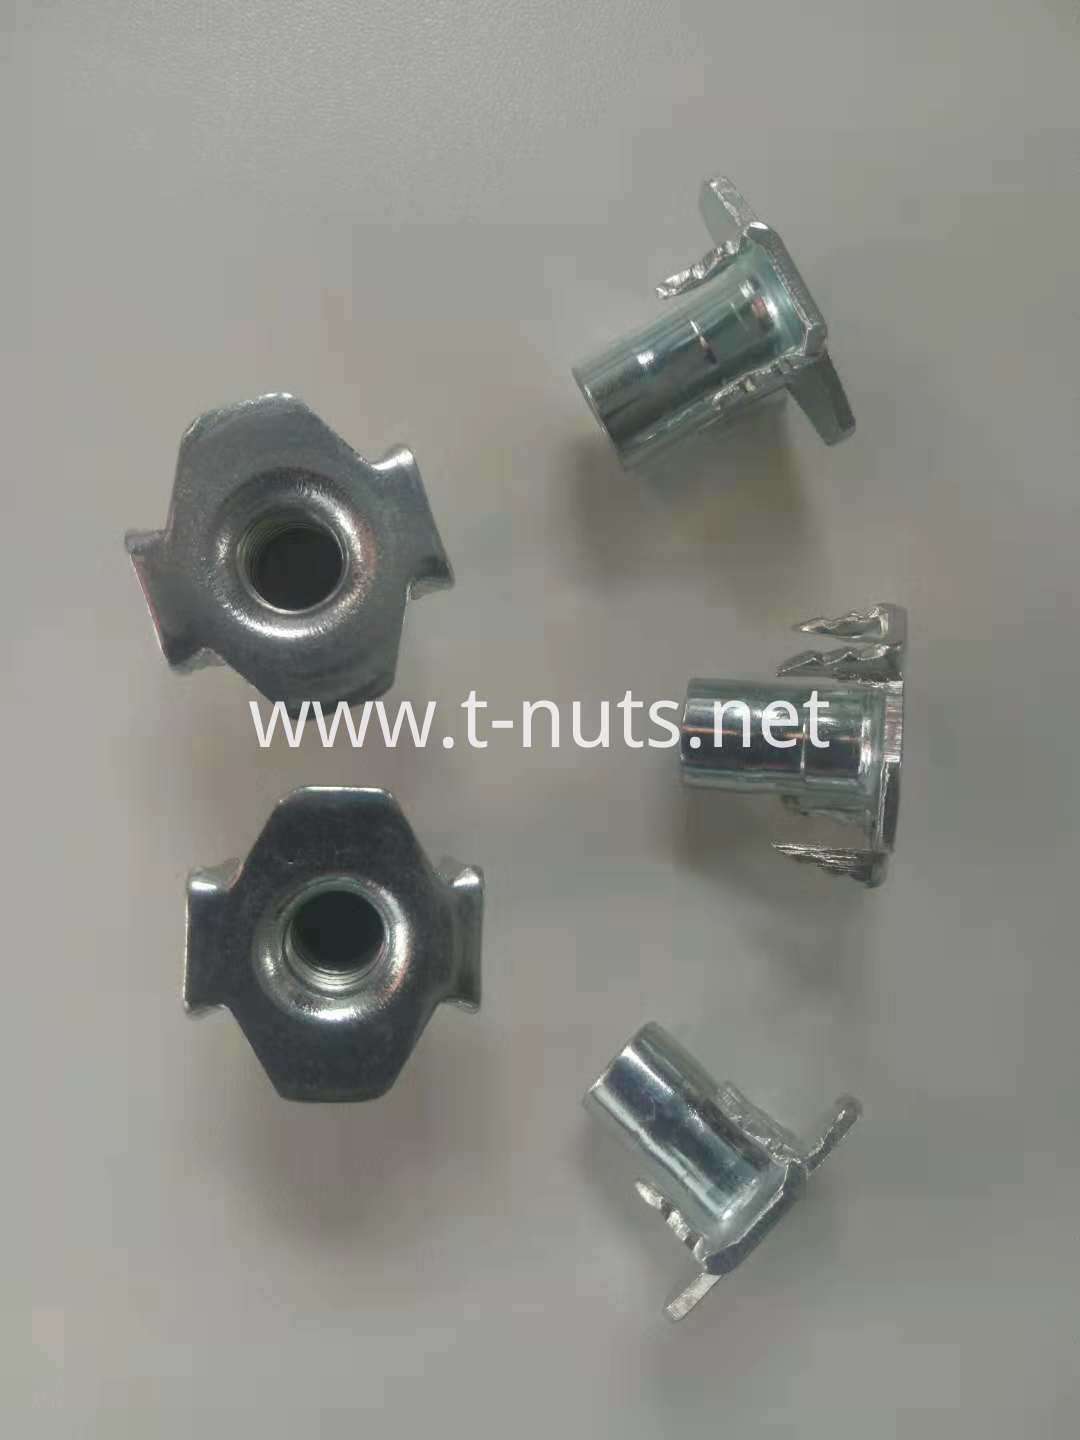 Stainless Steel T-nut